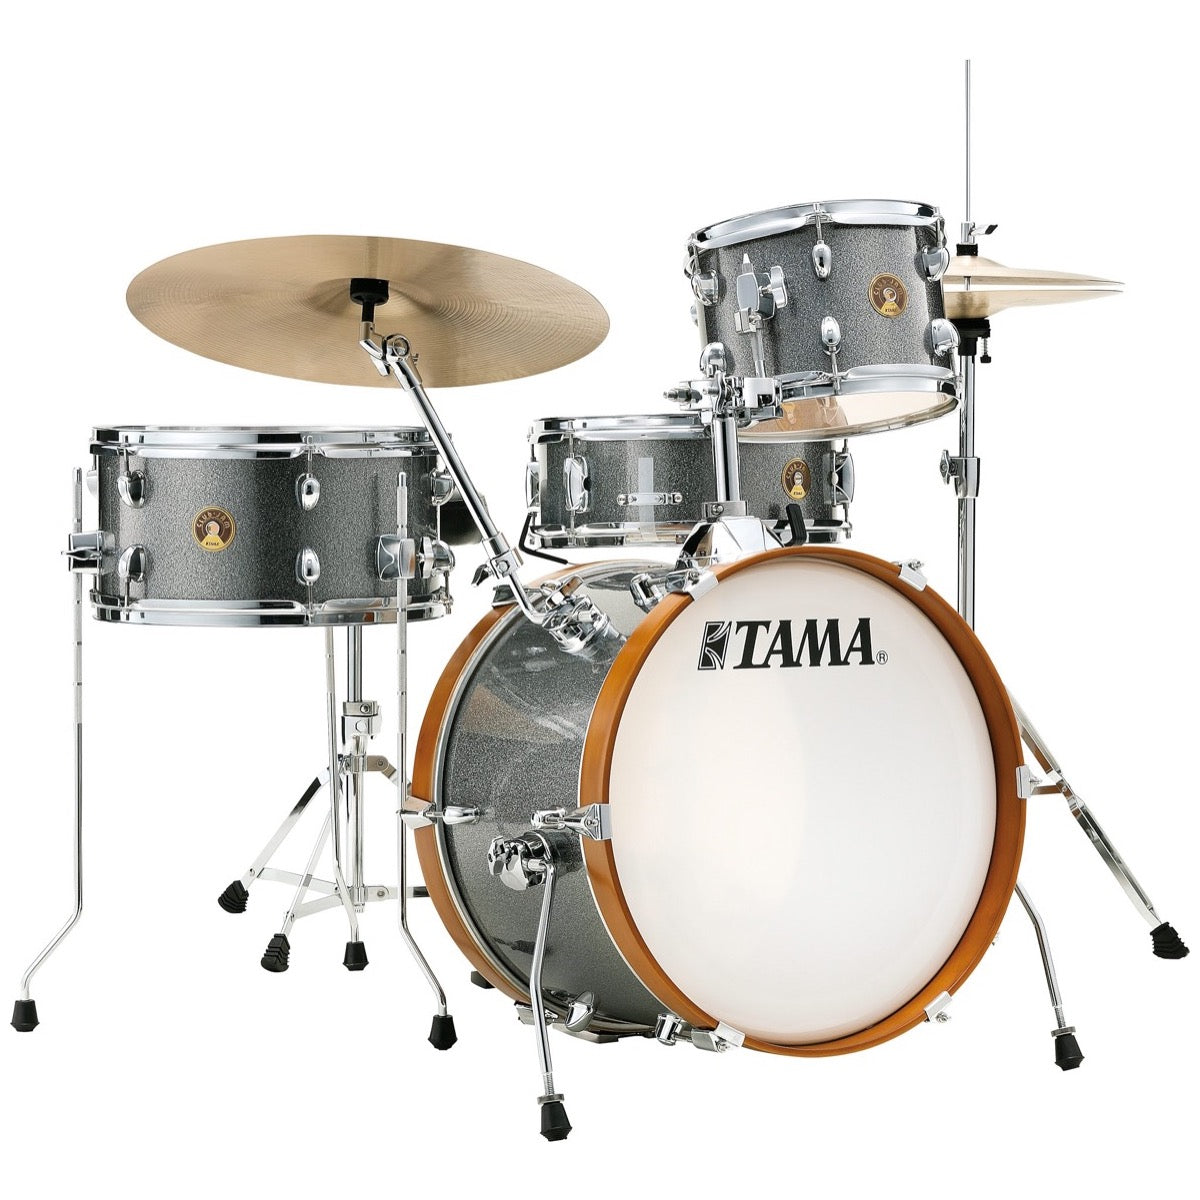 Tama Club Jam Drum Shell Kit, 4-Piece, Galaxy Silver